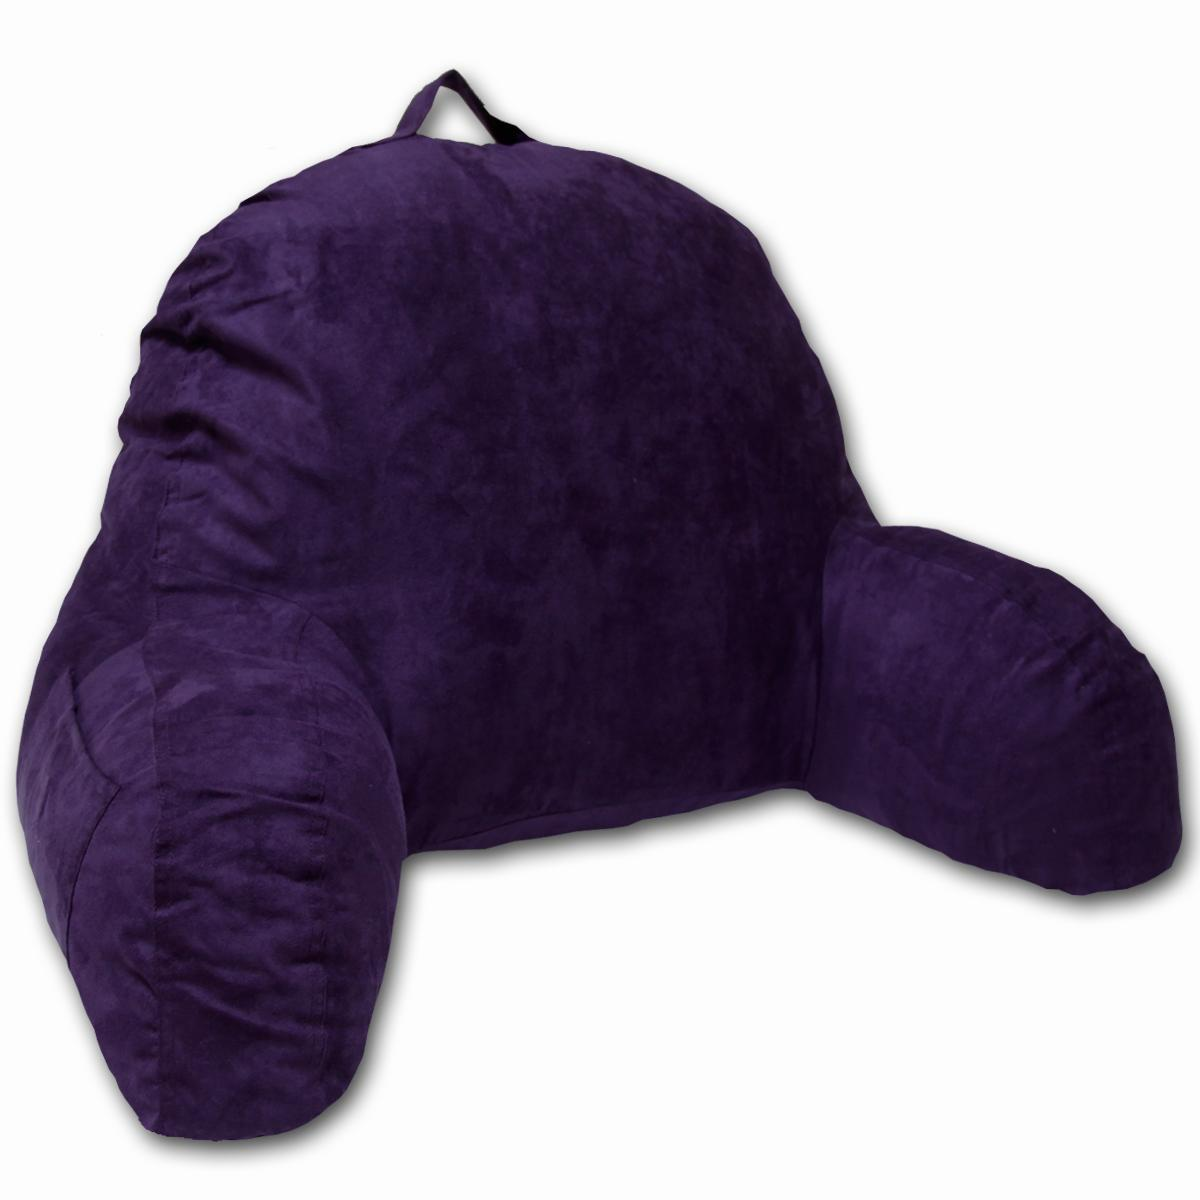 Purple Microsuede Bed Rest